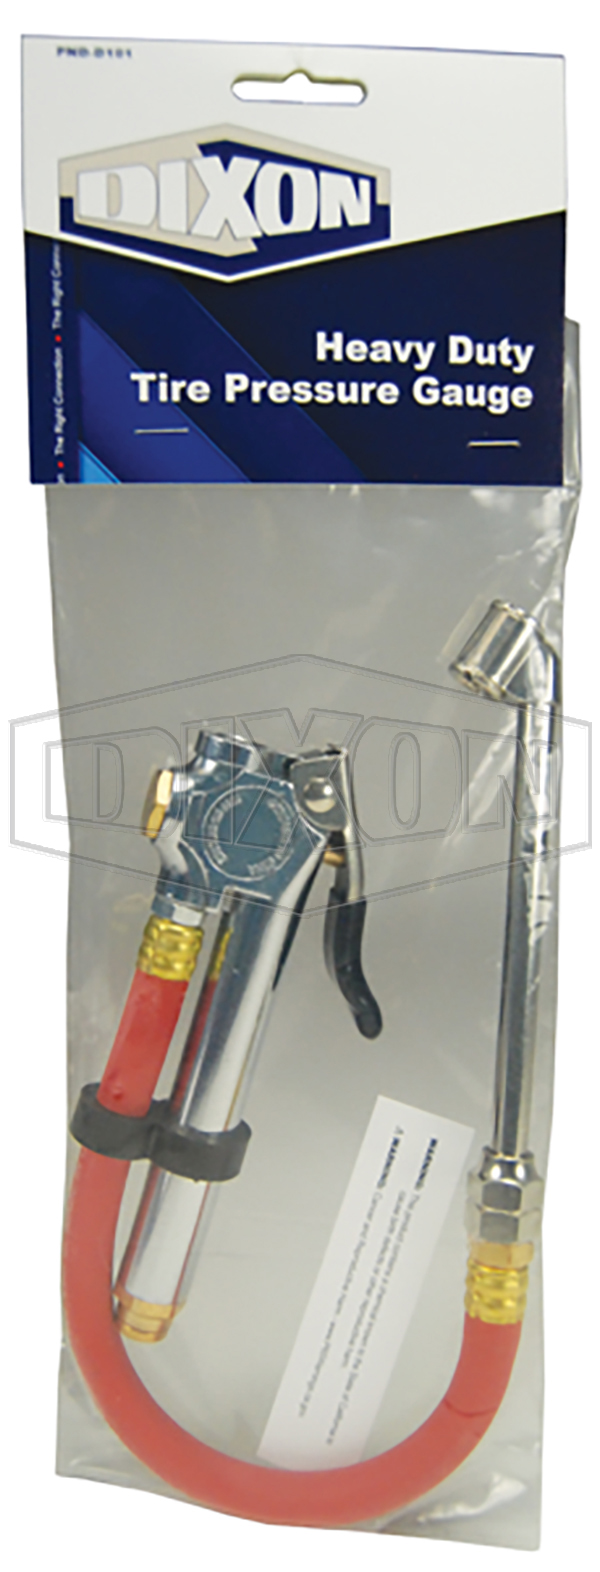 pneumatic fittings display heavy duty tire pressure gauge